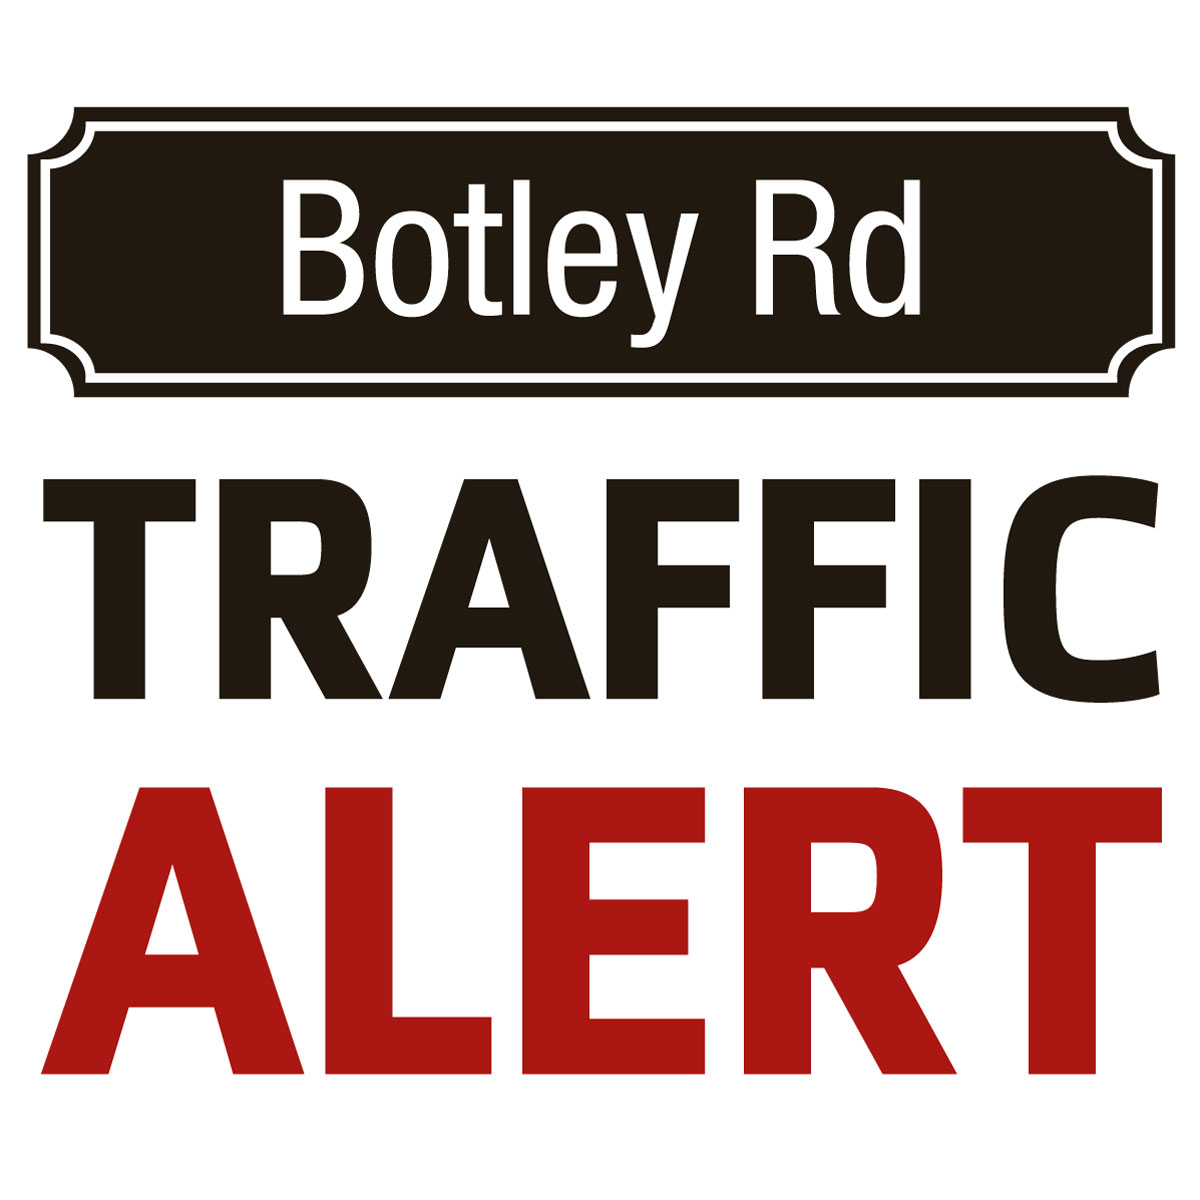 Roadworks on Botley Road causing delays